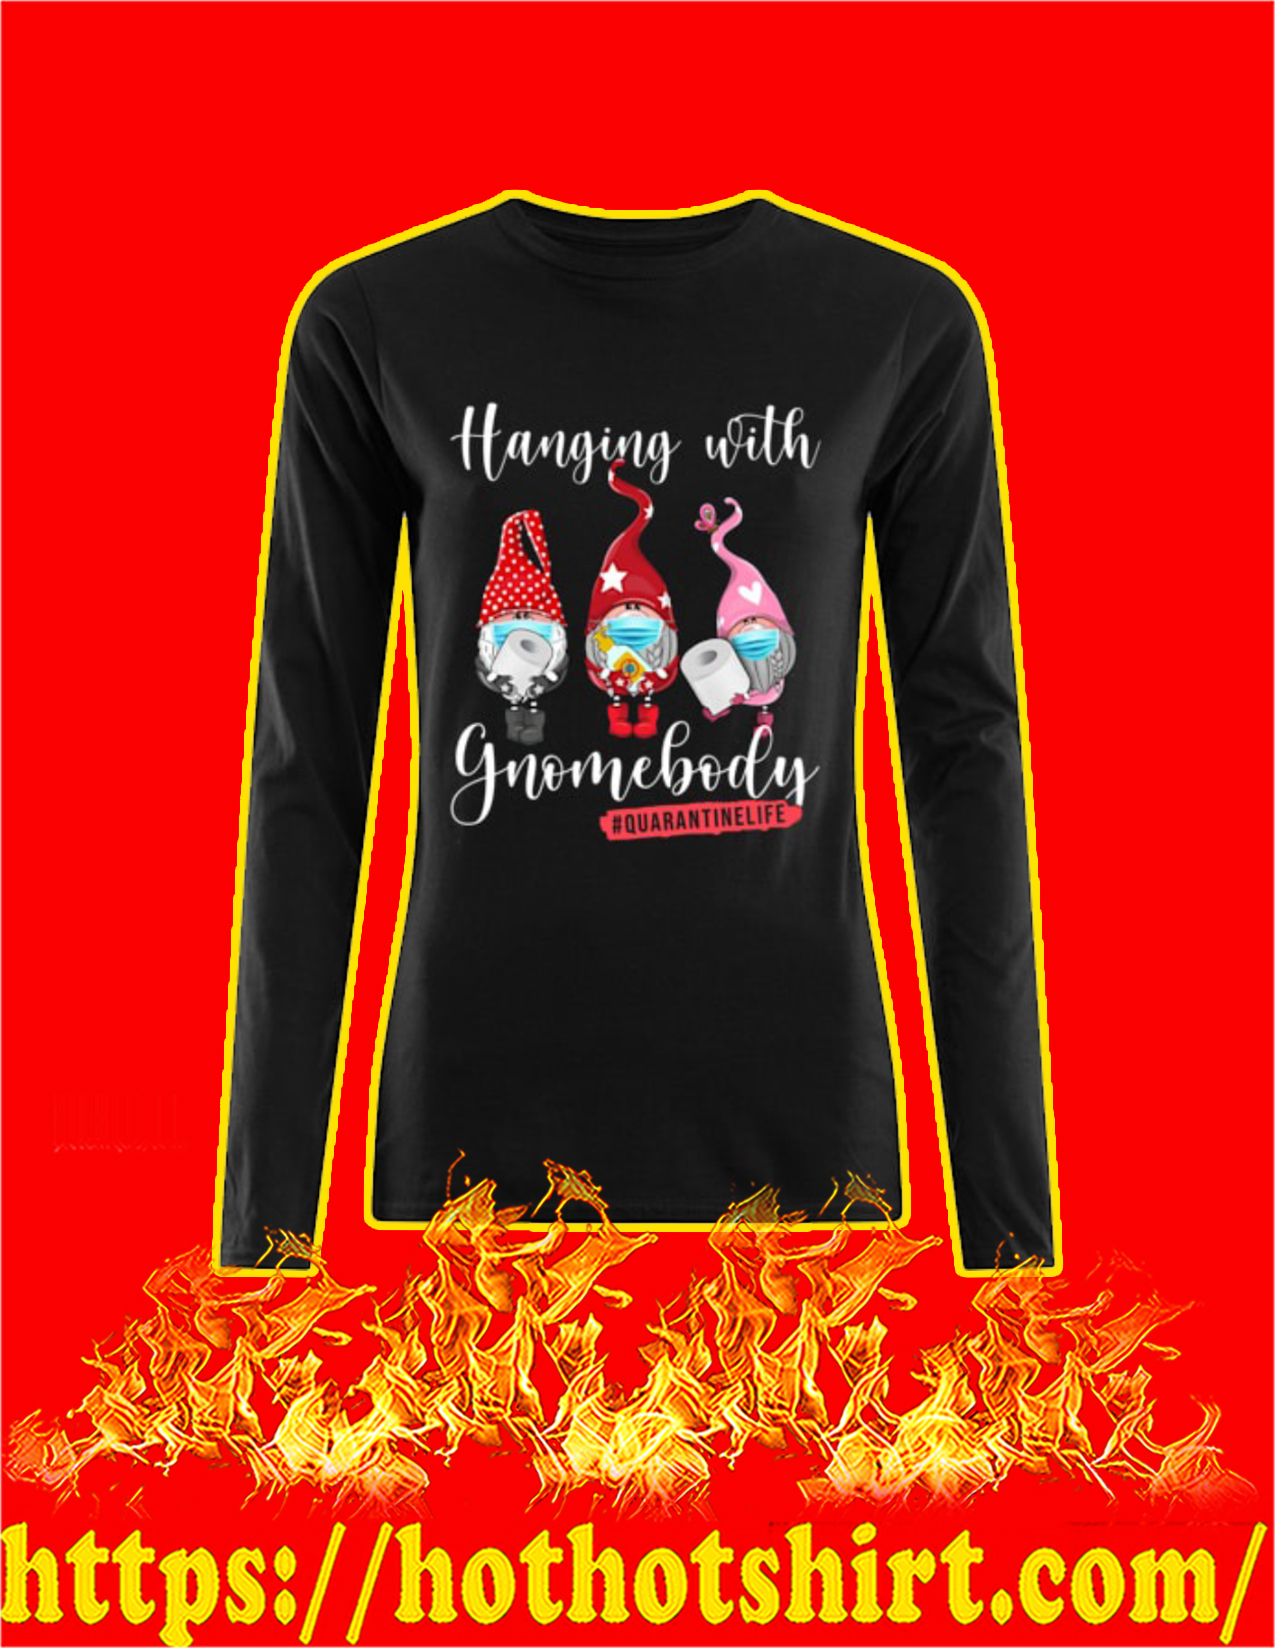 Hanging with gnomebody quarantine life women long sleeved